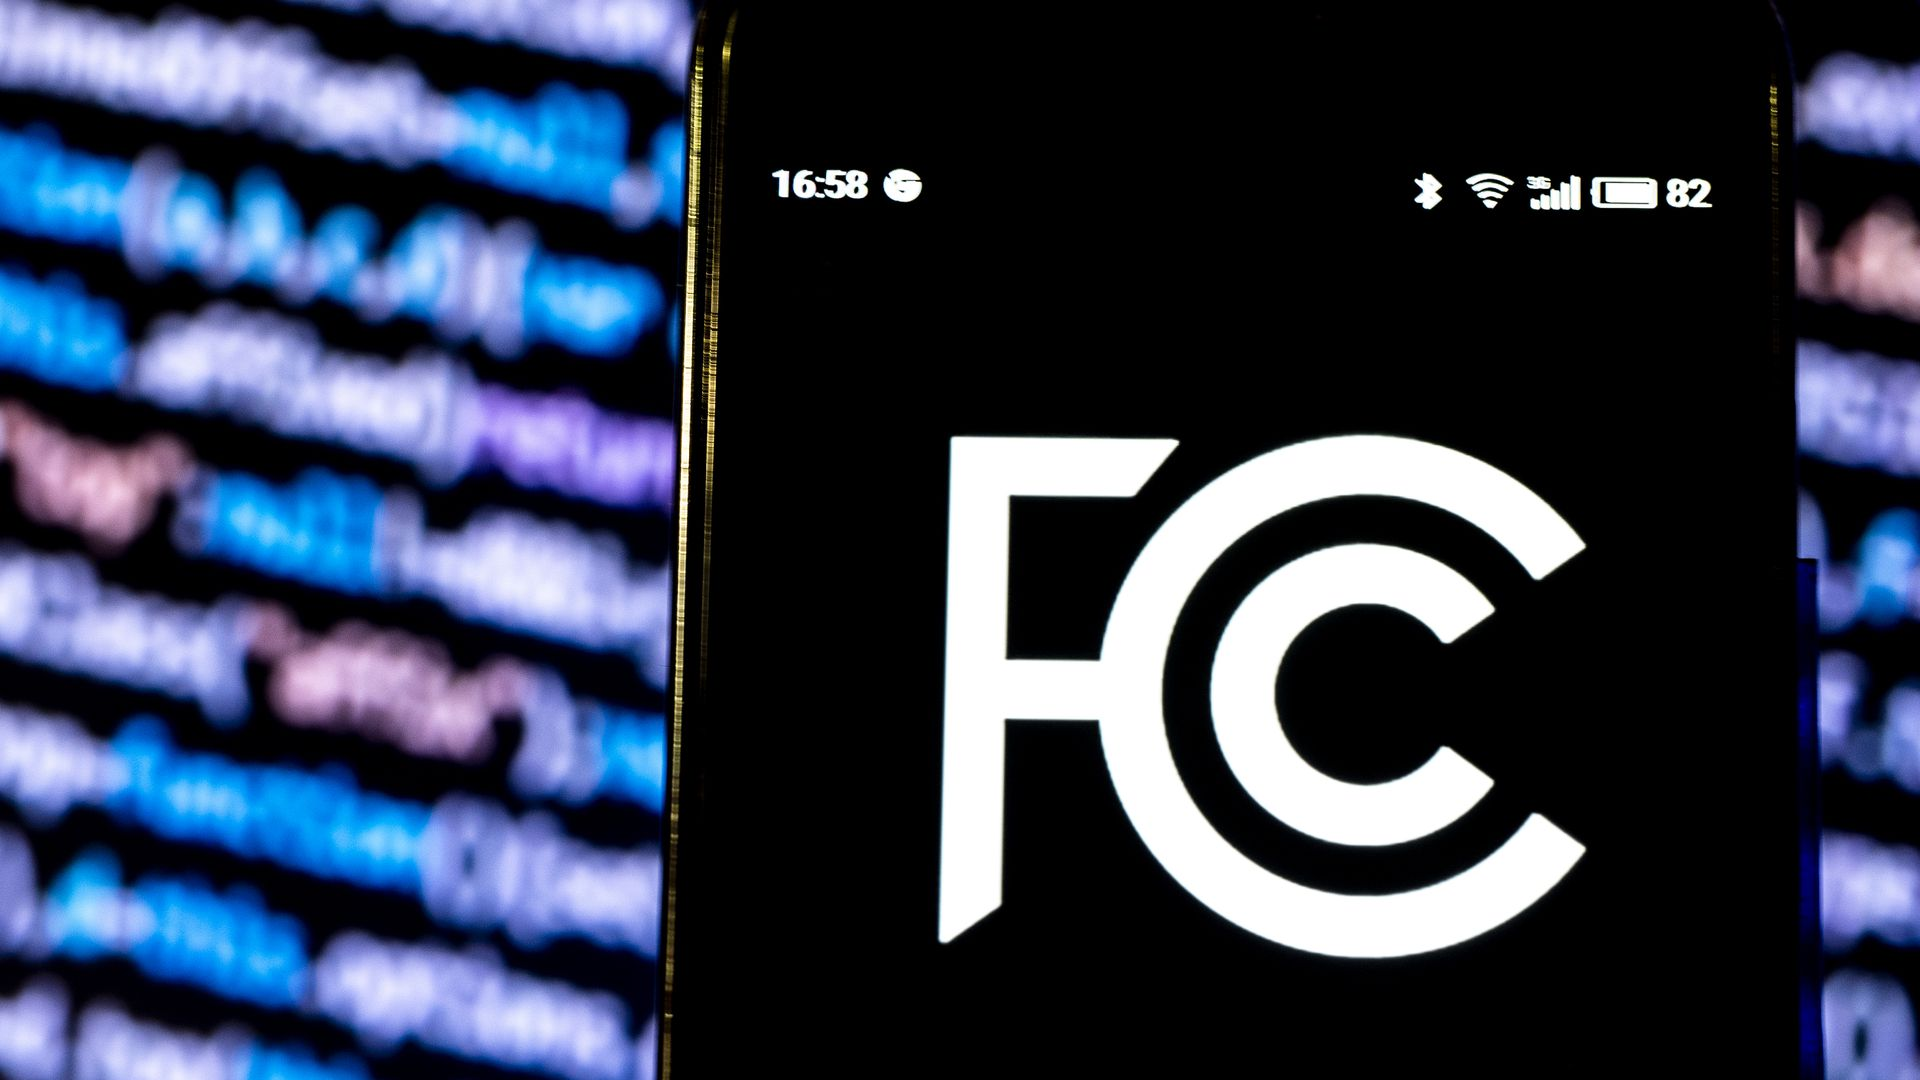 FCC logo displayed on smartphone